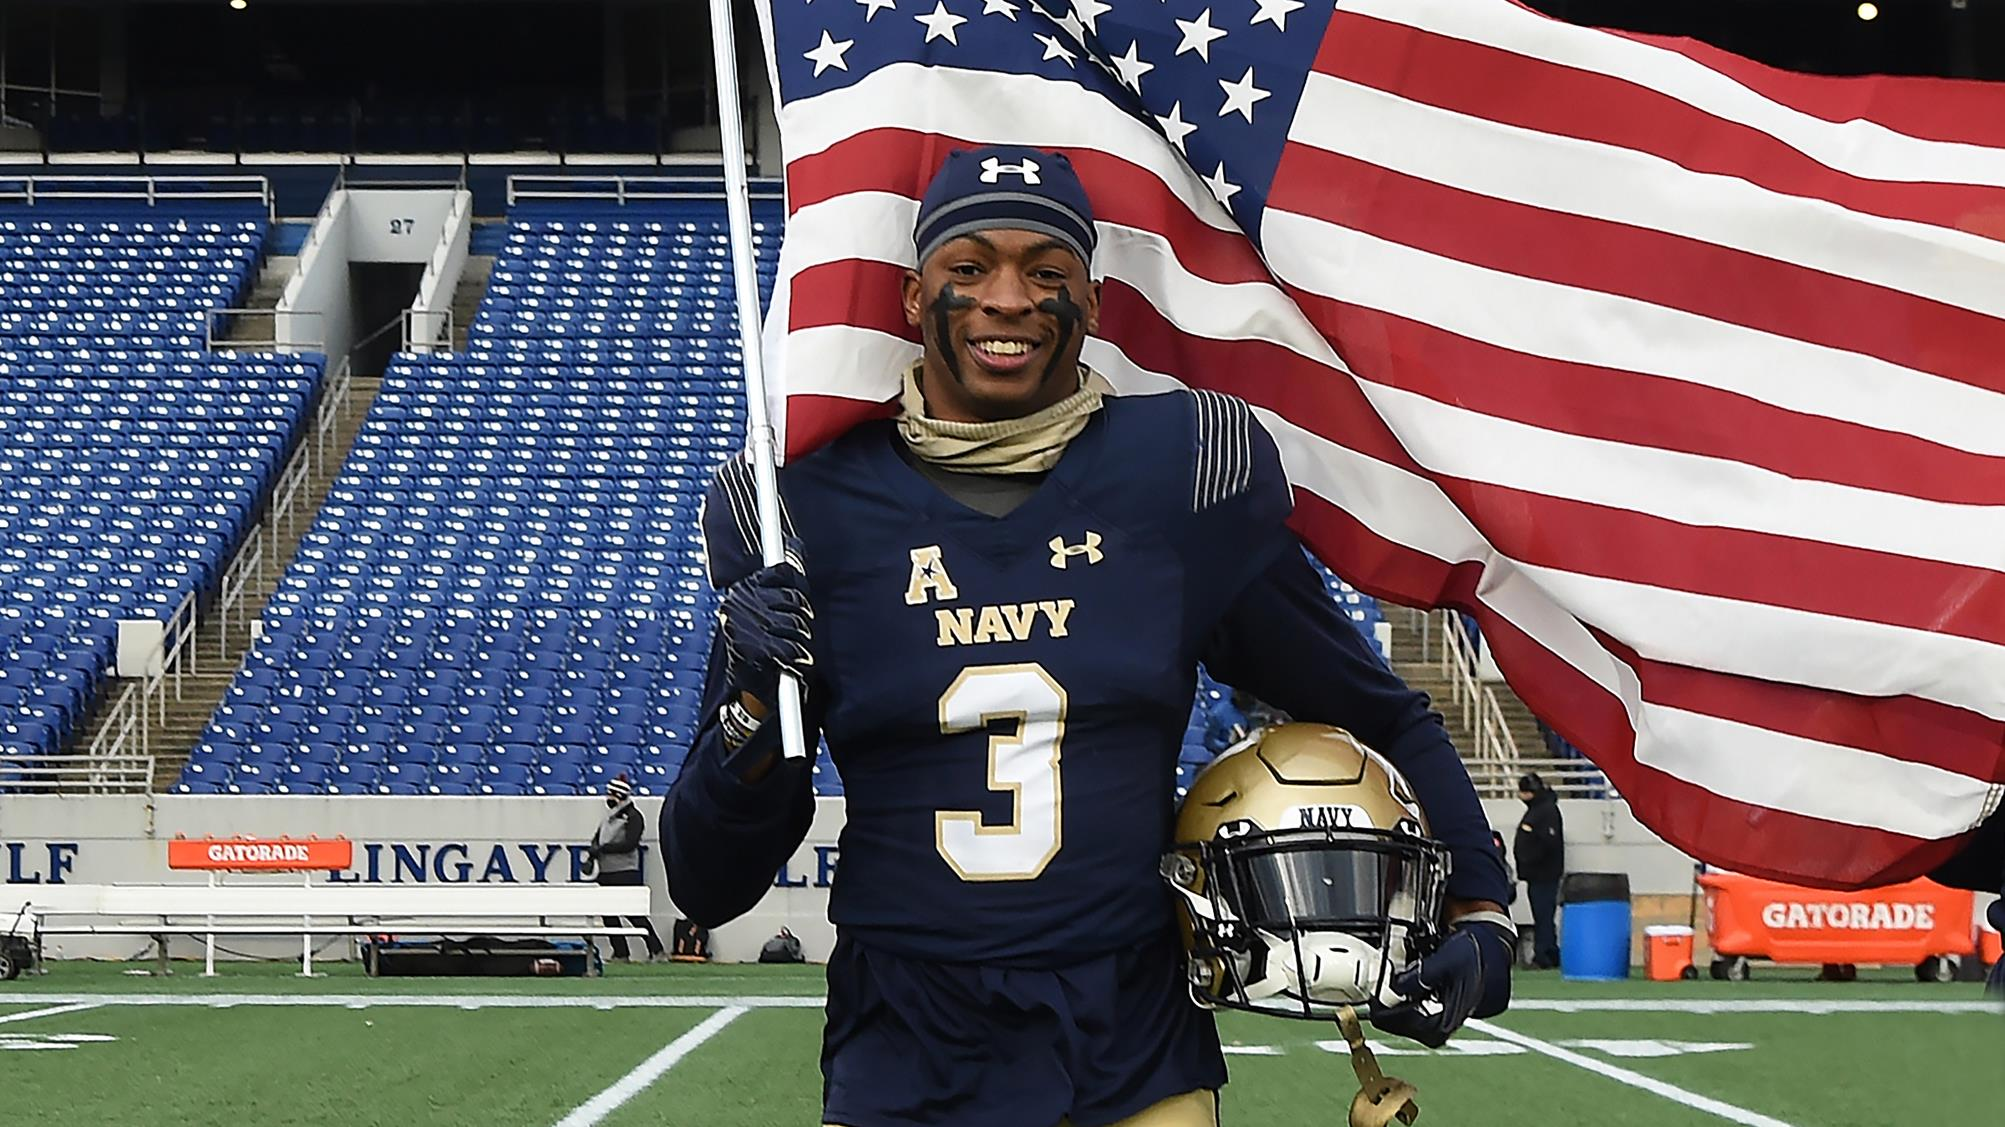 U.S. Navy Won't Let Rookie Cornerback Cameron Kinley Delay Commission to Play for Tampa Bay Buccaneers